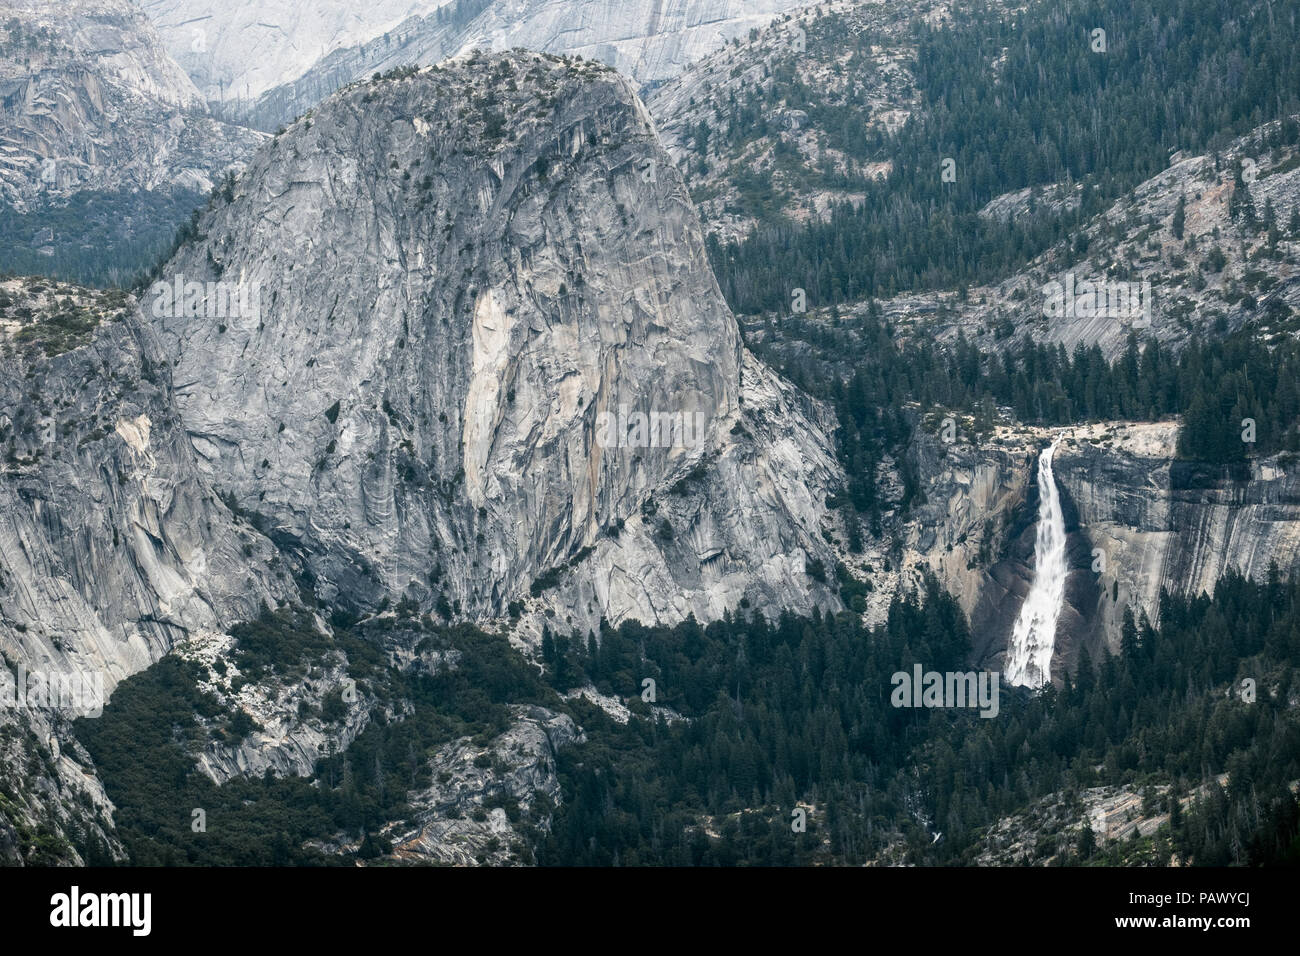 Granite Valley and Dome Landscape, With Flowing Nevada Falls - Taken from Wawona (Glacier Point Road) - Yosemite National Park Stock Photo